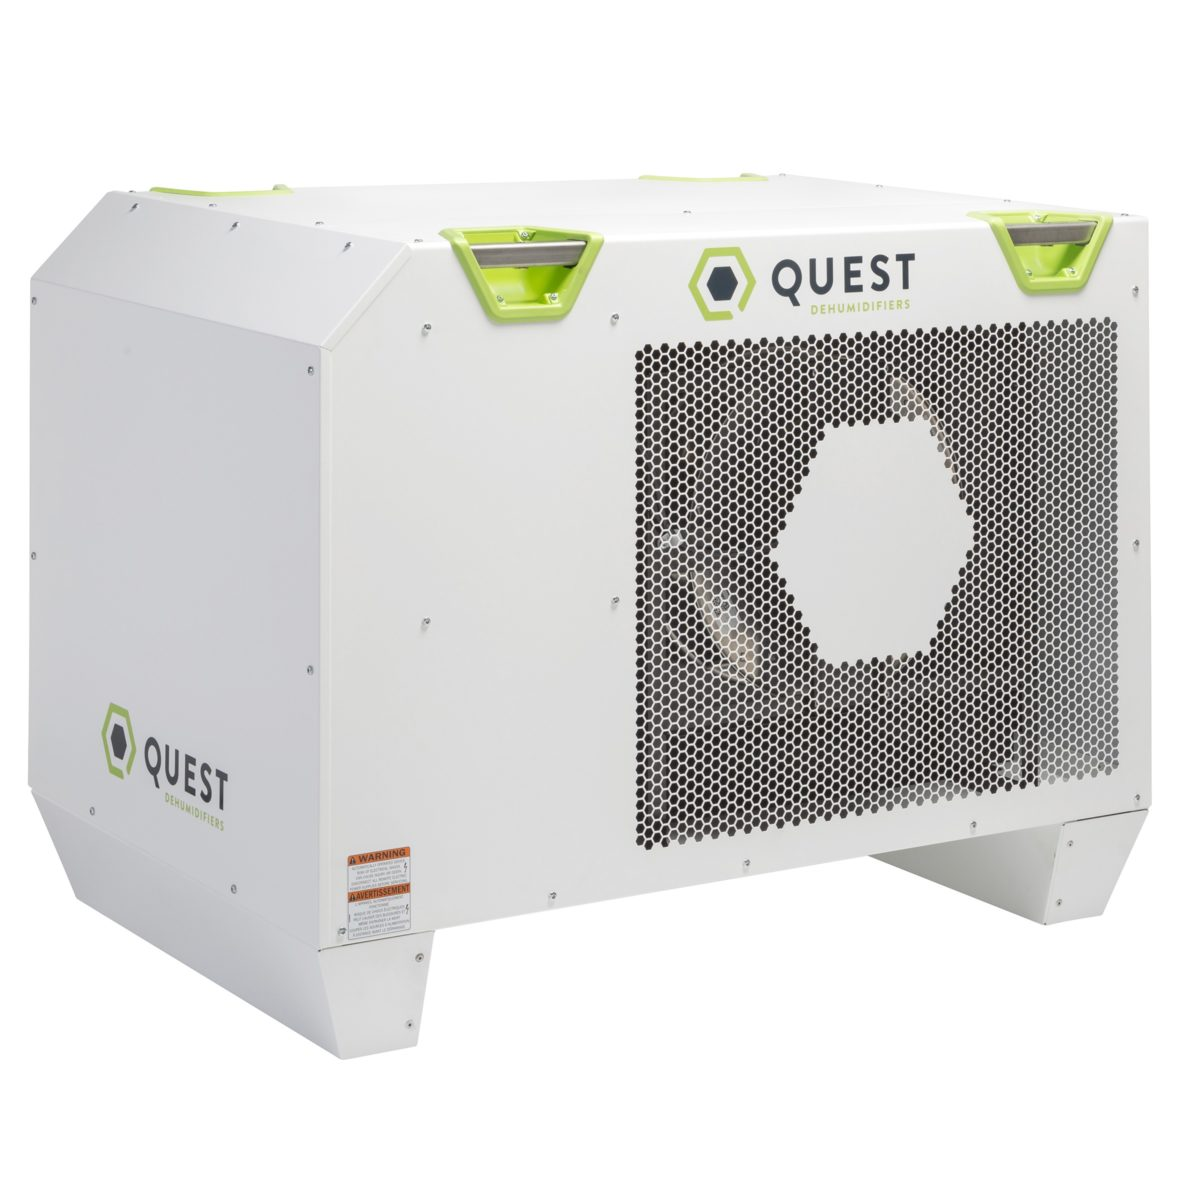 QUEST 506 Commercial Dehumidifier 500 Pint